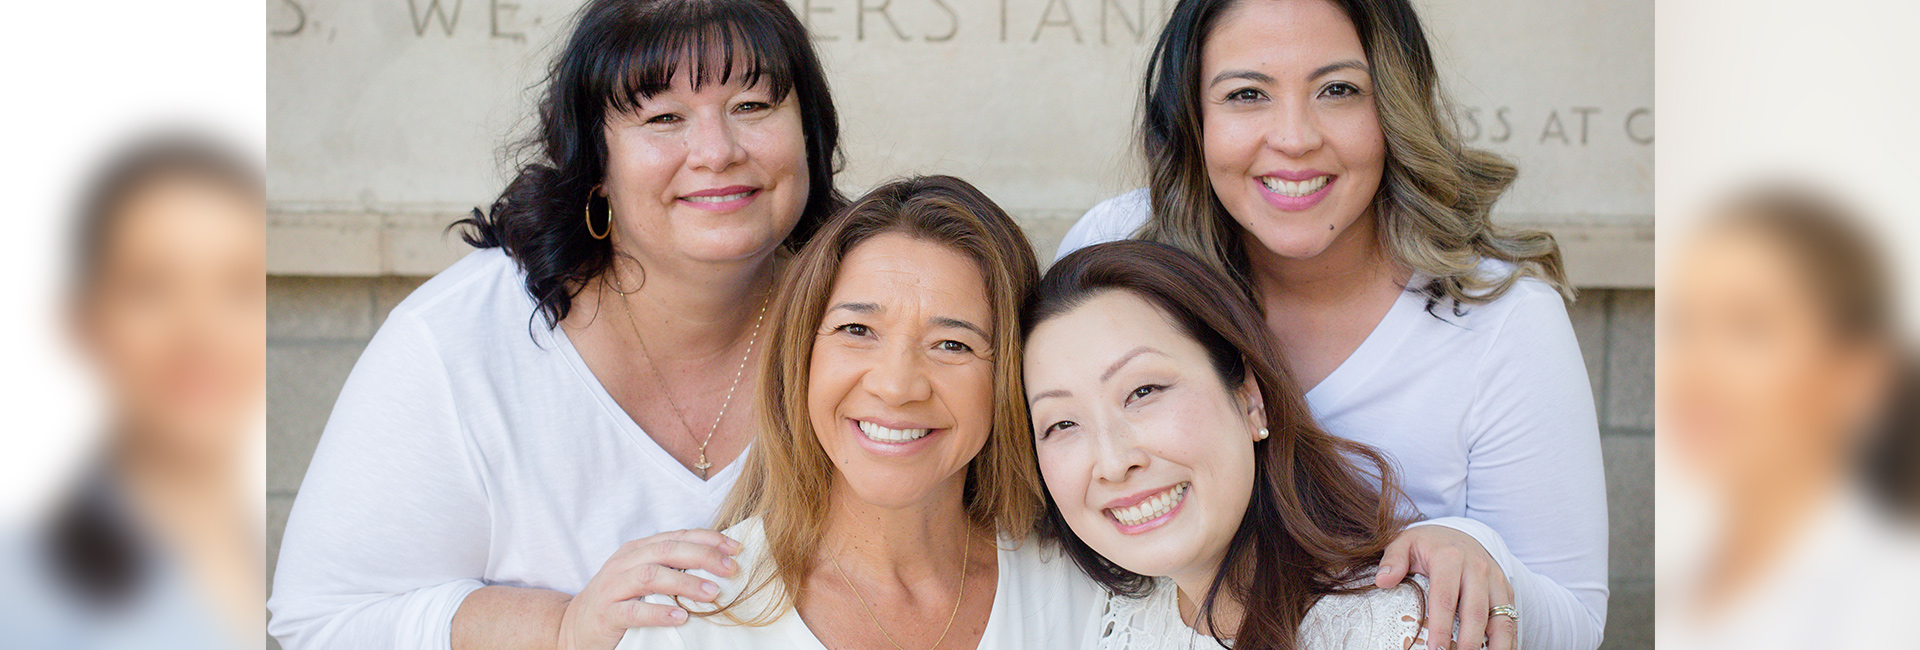 Jacquelyn, Veronica D, Veronica N and Dr. Jennifer nation